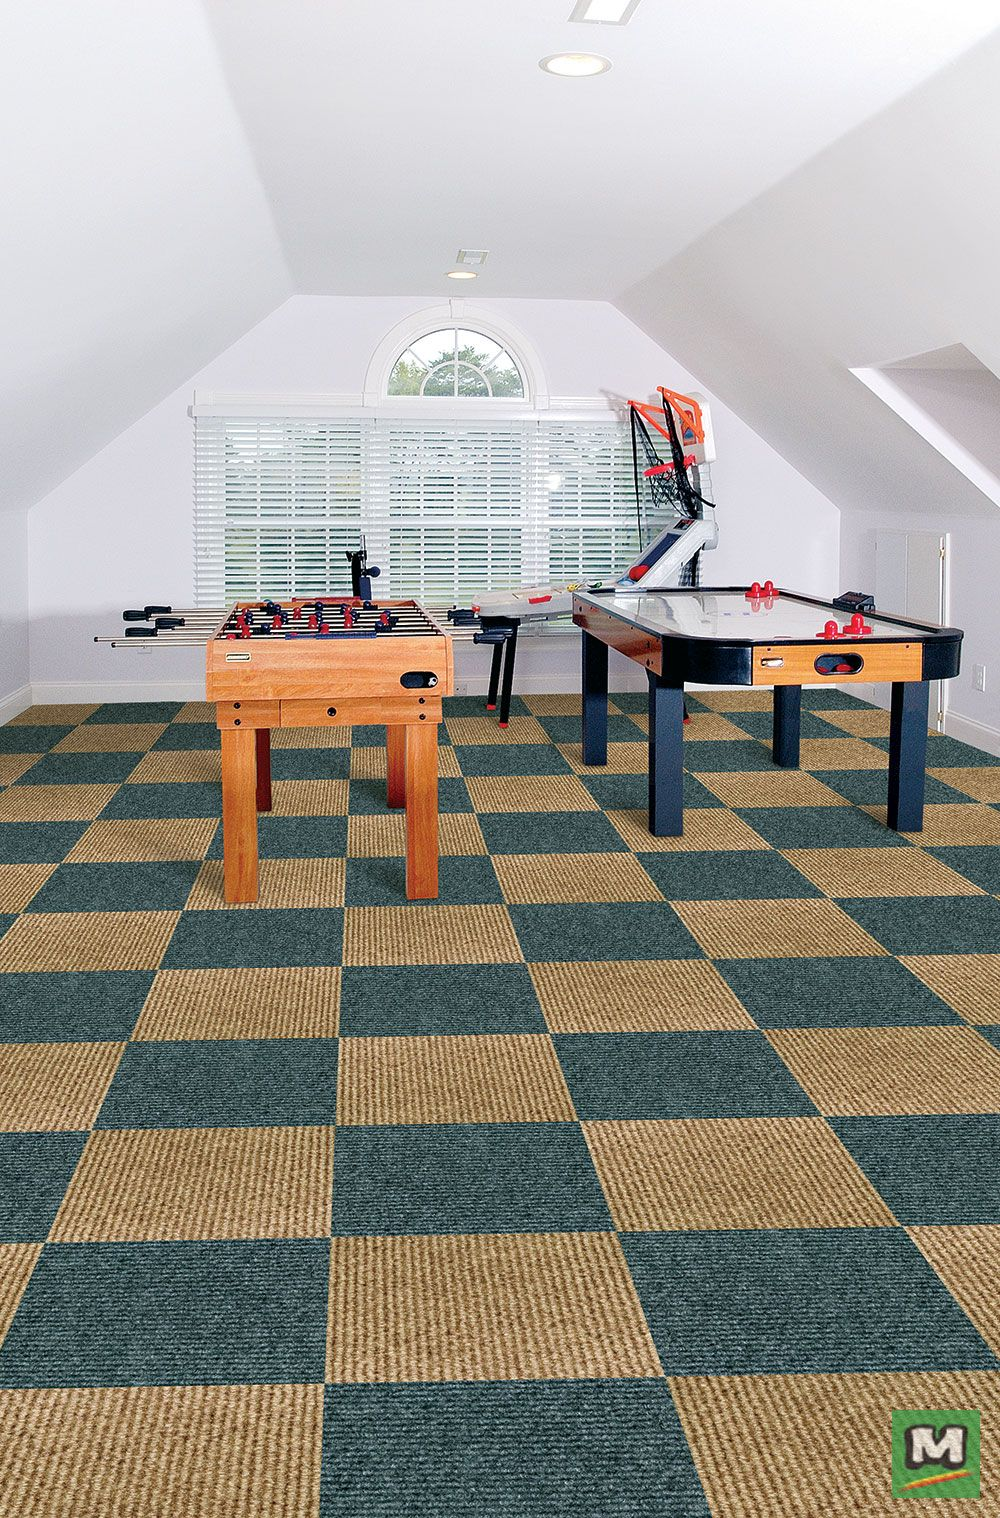 Foss® Ozite™ QuickFloor™ Carpet Tiles are the best choice